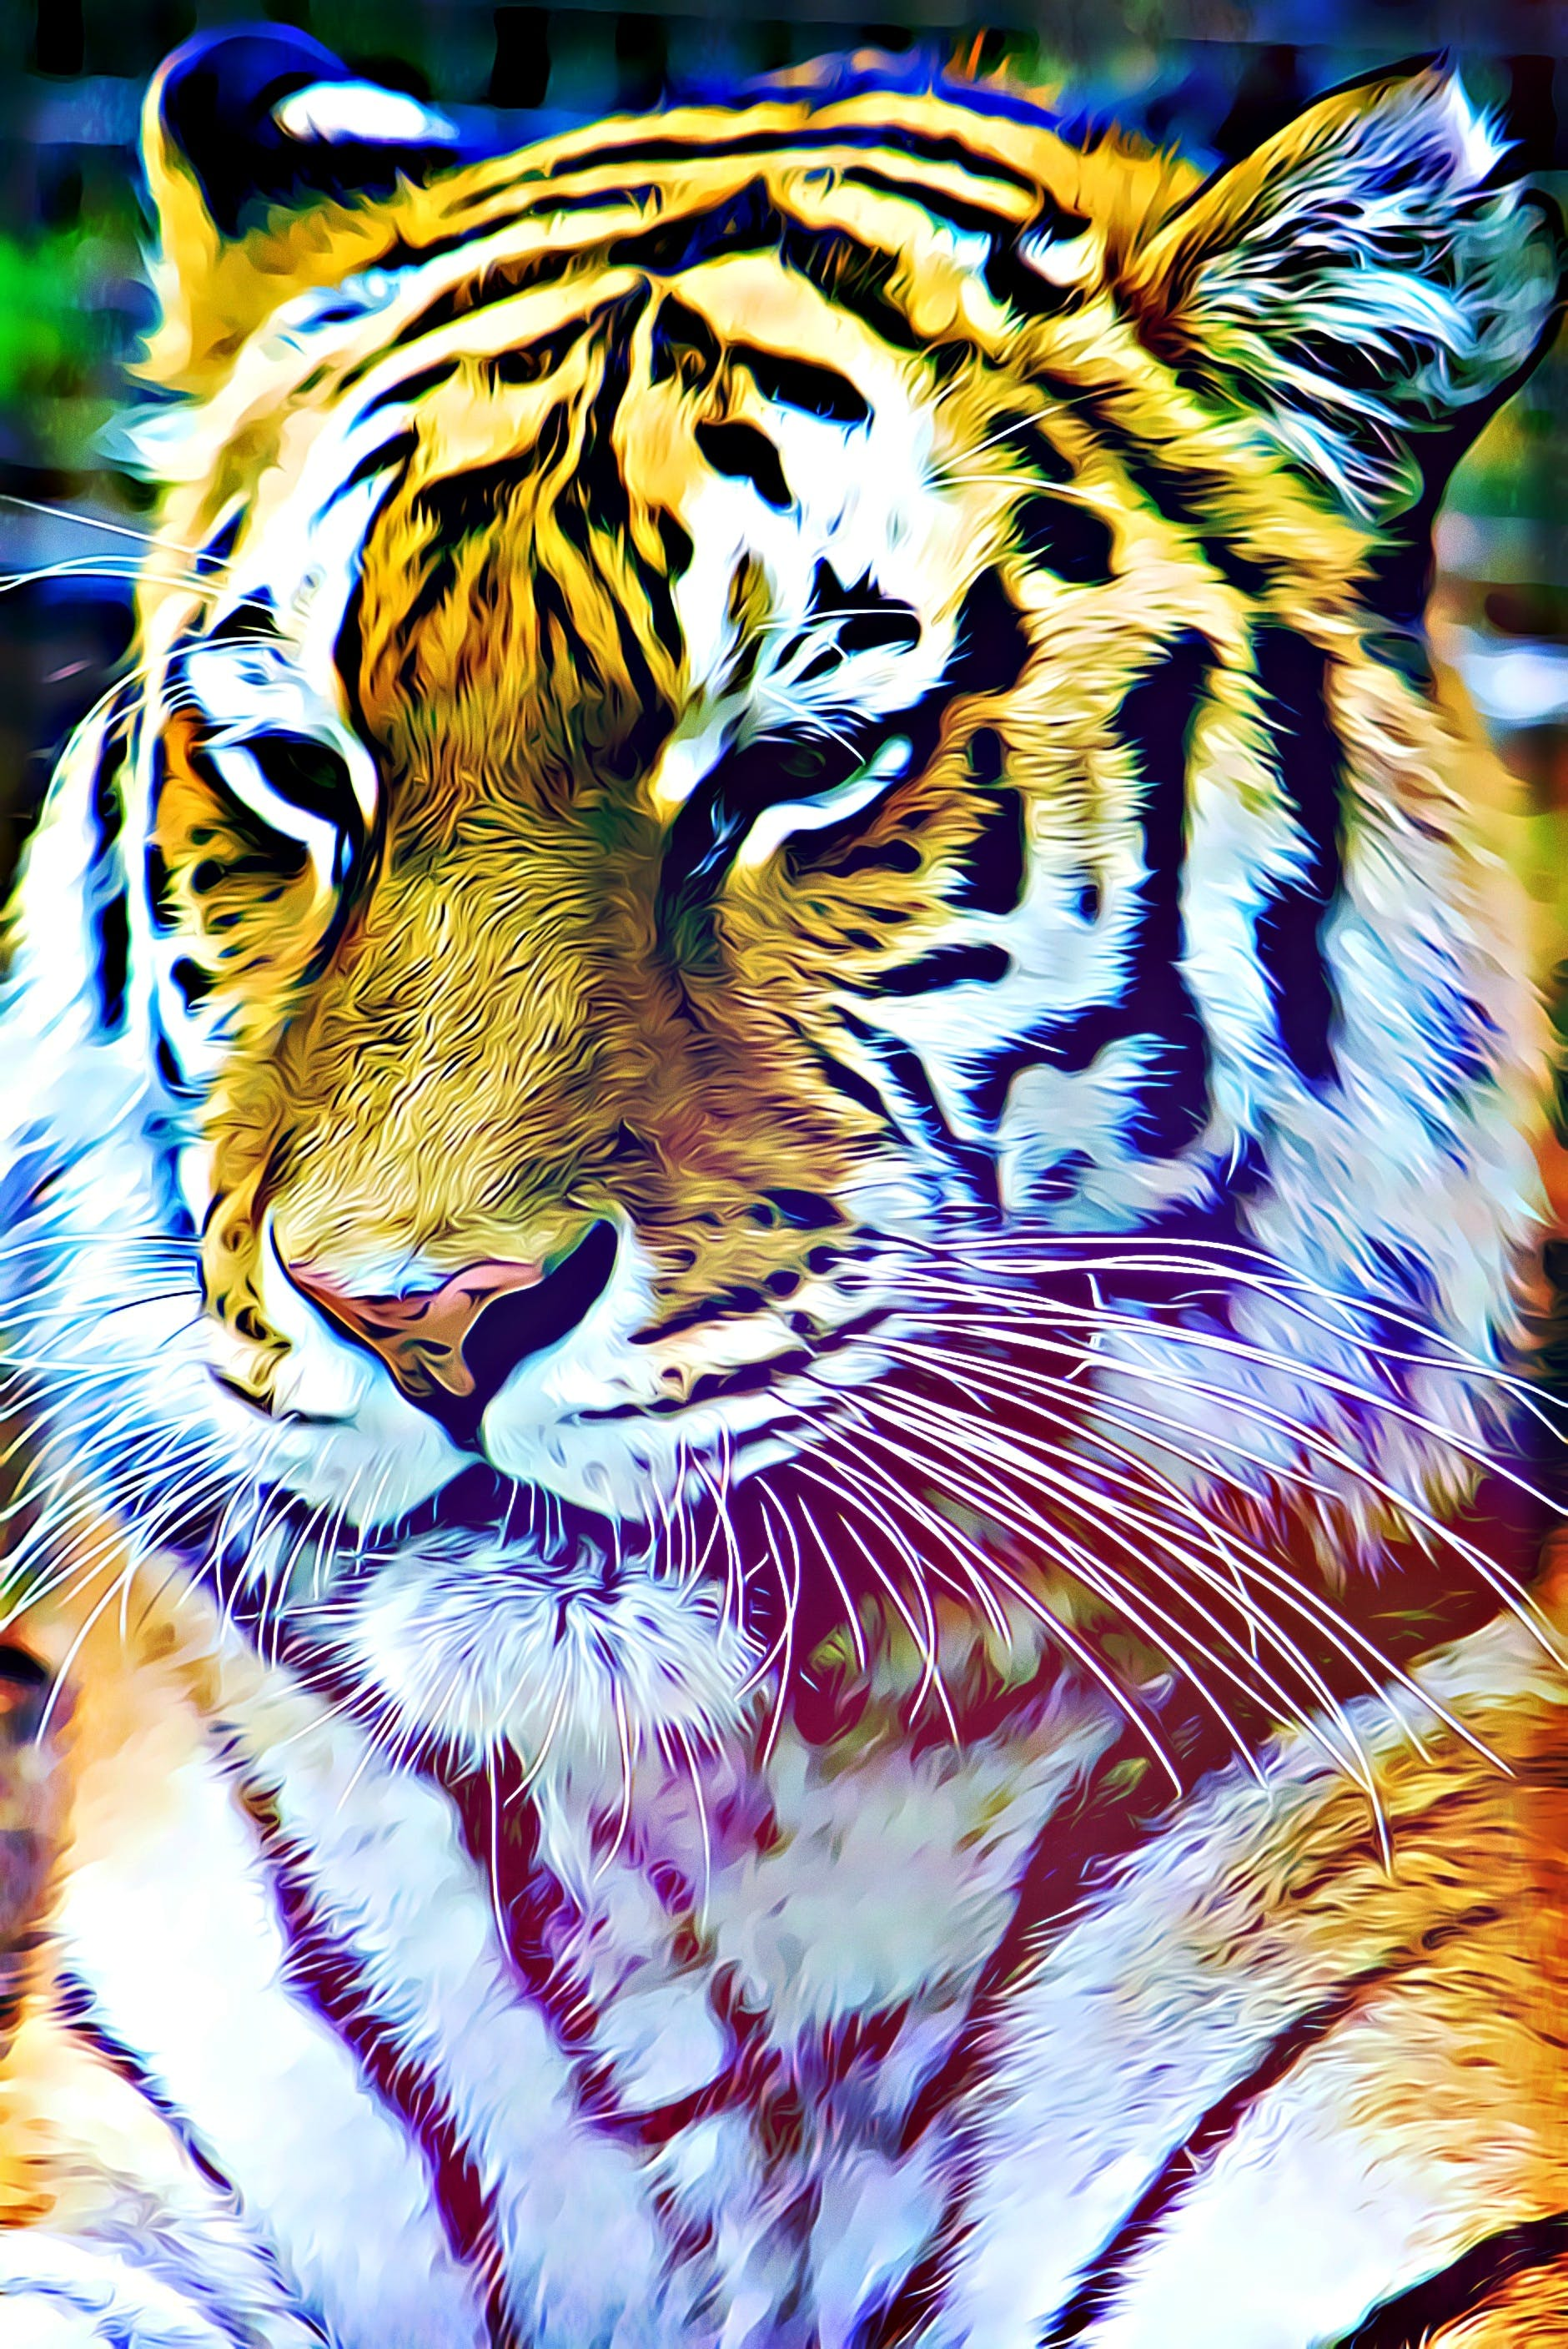 Free stock photo of nature, animal, tiger, color